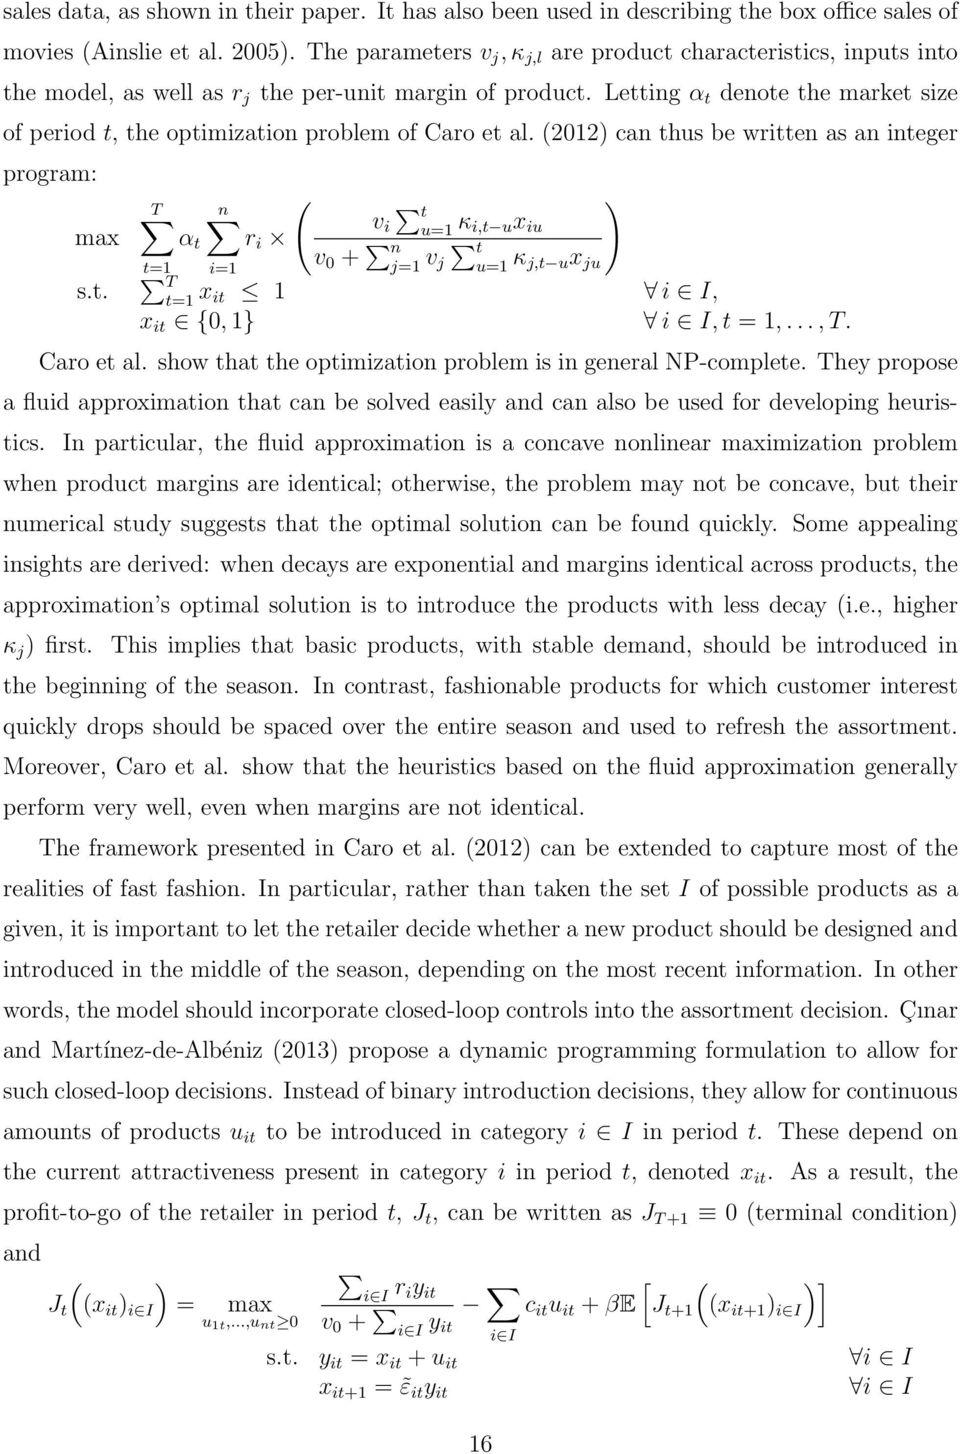 Letting α t denote the market size of period t, the optimization problem of Caro et al. (2012) can thus be written as an integer program: max s.t. ( T n ) v t i u=1 α t r i κ i,t ux iu v t=1 i=1 0 + n j=1 v t j u=1 κ j,t ux ju T t=1 x it 1 i I, x it {0, 1} i I, t = 1,.